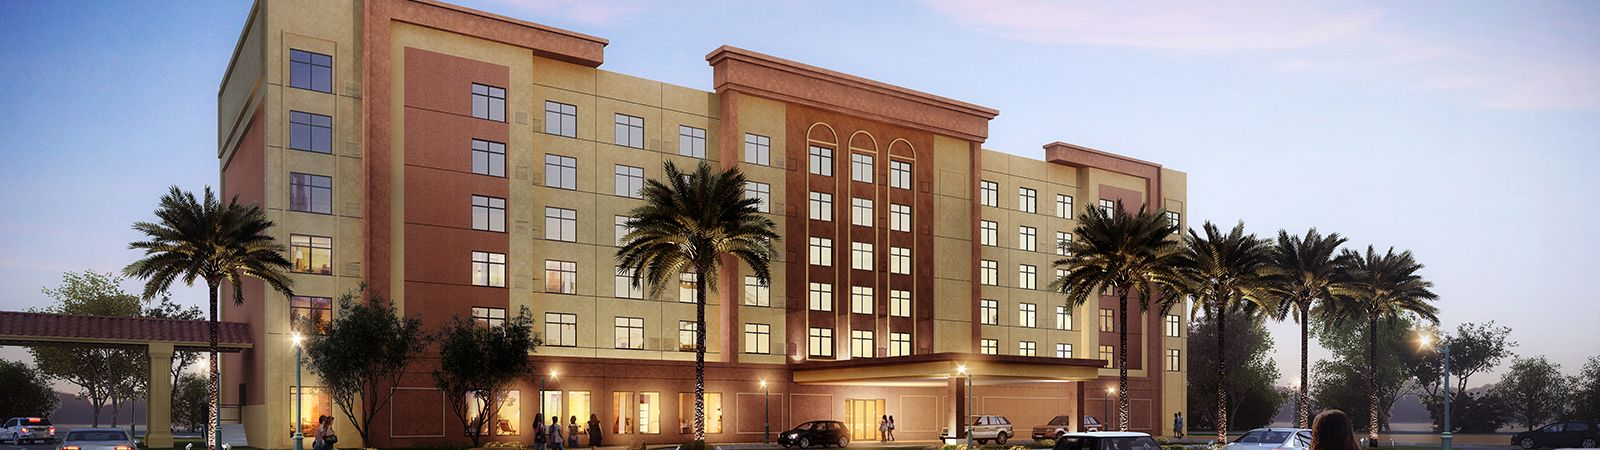 Casino Del Sol Hotel Expansion 2018 rendering